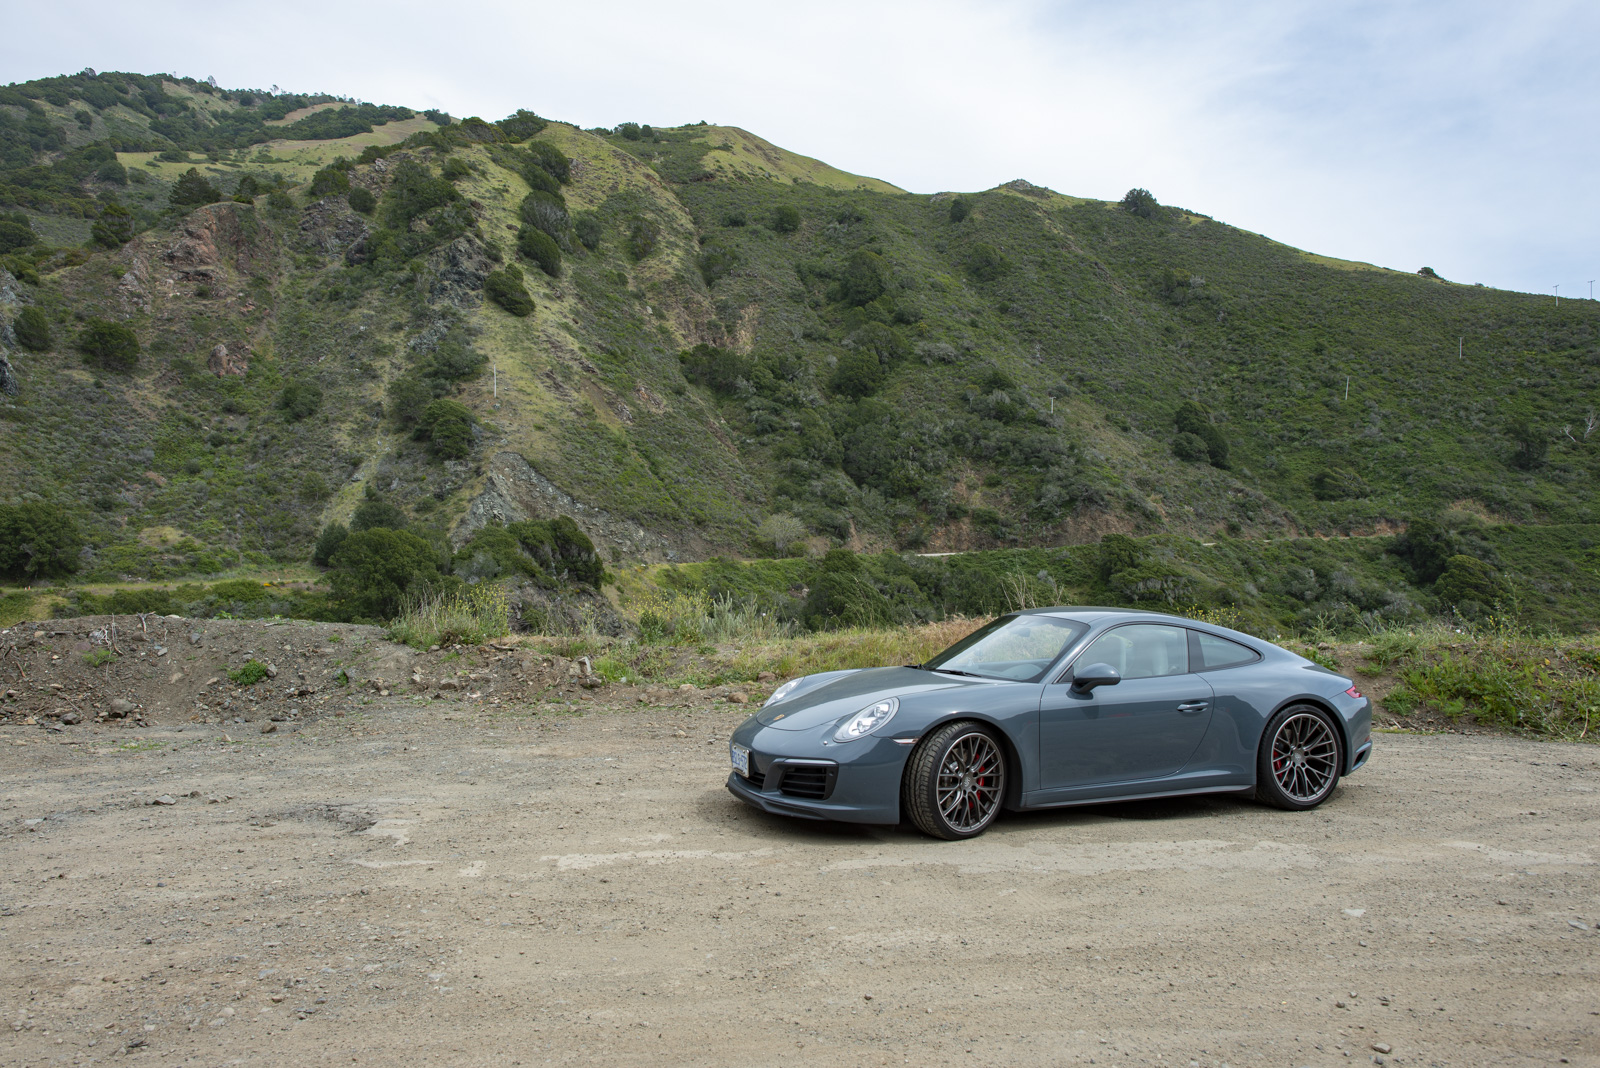 Toronto to L.A. in a Porsche 991.2 911 C4S - Actual Route